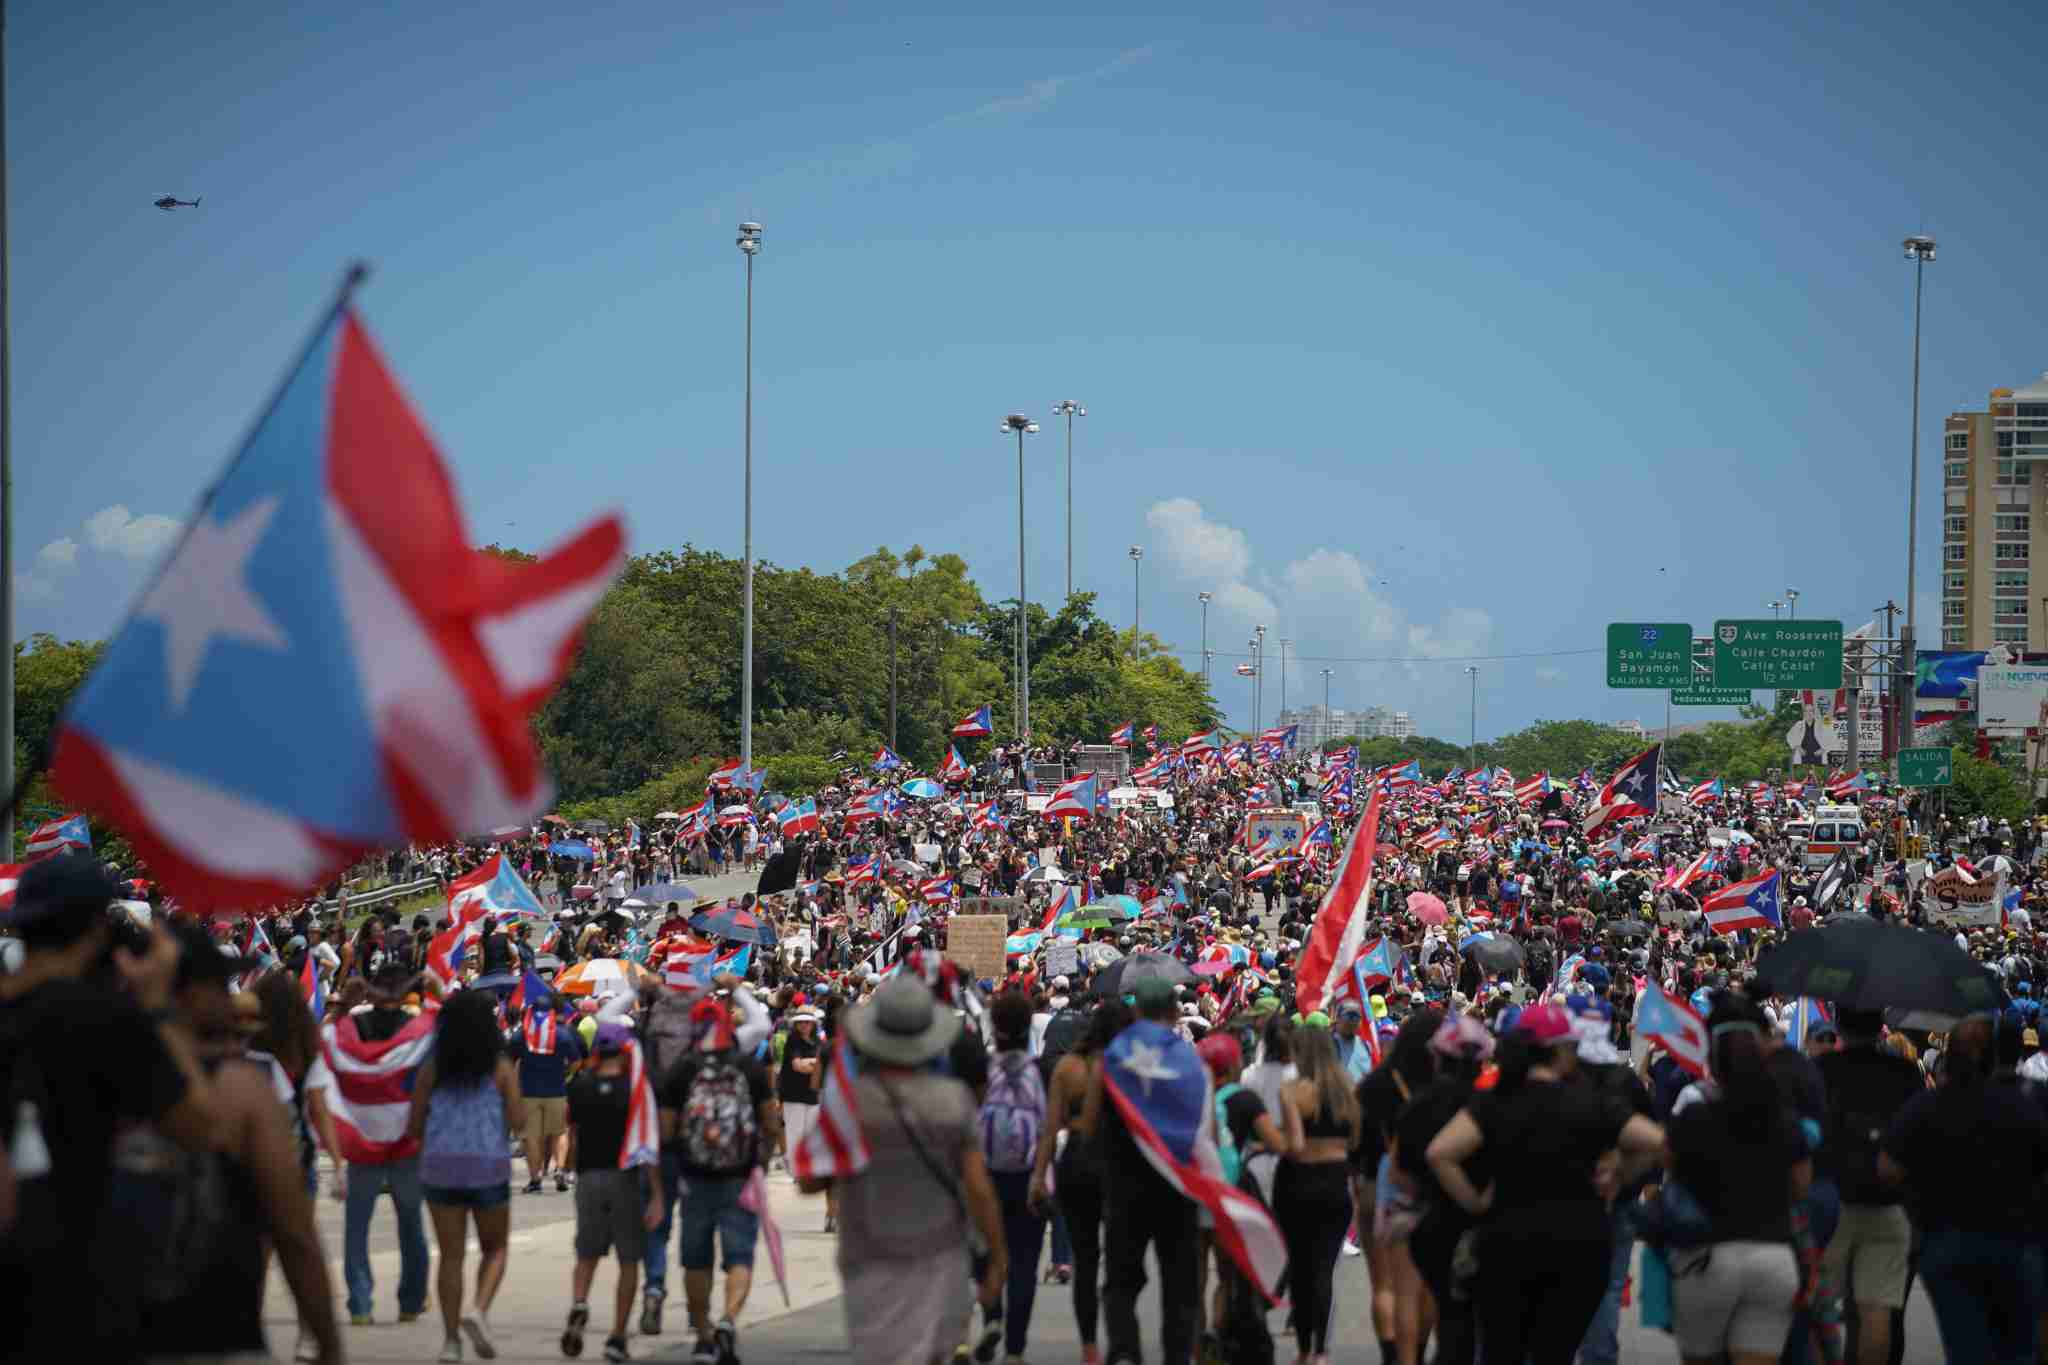 SAN JUAN, PUERTO RICO - JULY 22: Demonstrators walk down the Las Americas Expressway, the biggest highway in Puerto Rico as part of a massive march on July 22, 2019 in San Juan, Puerto Rico. There have been calls for the Governor to step down after it was revealed that he and top aides were part of a private chat group that contained among other messages misogynistic and homophobic messages. (Photo by Angel Valentin/Getty Images)